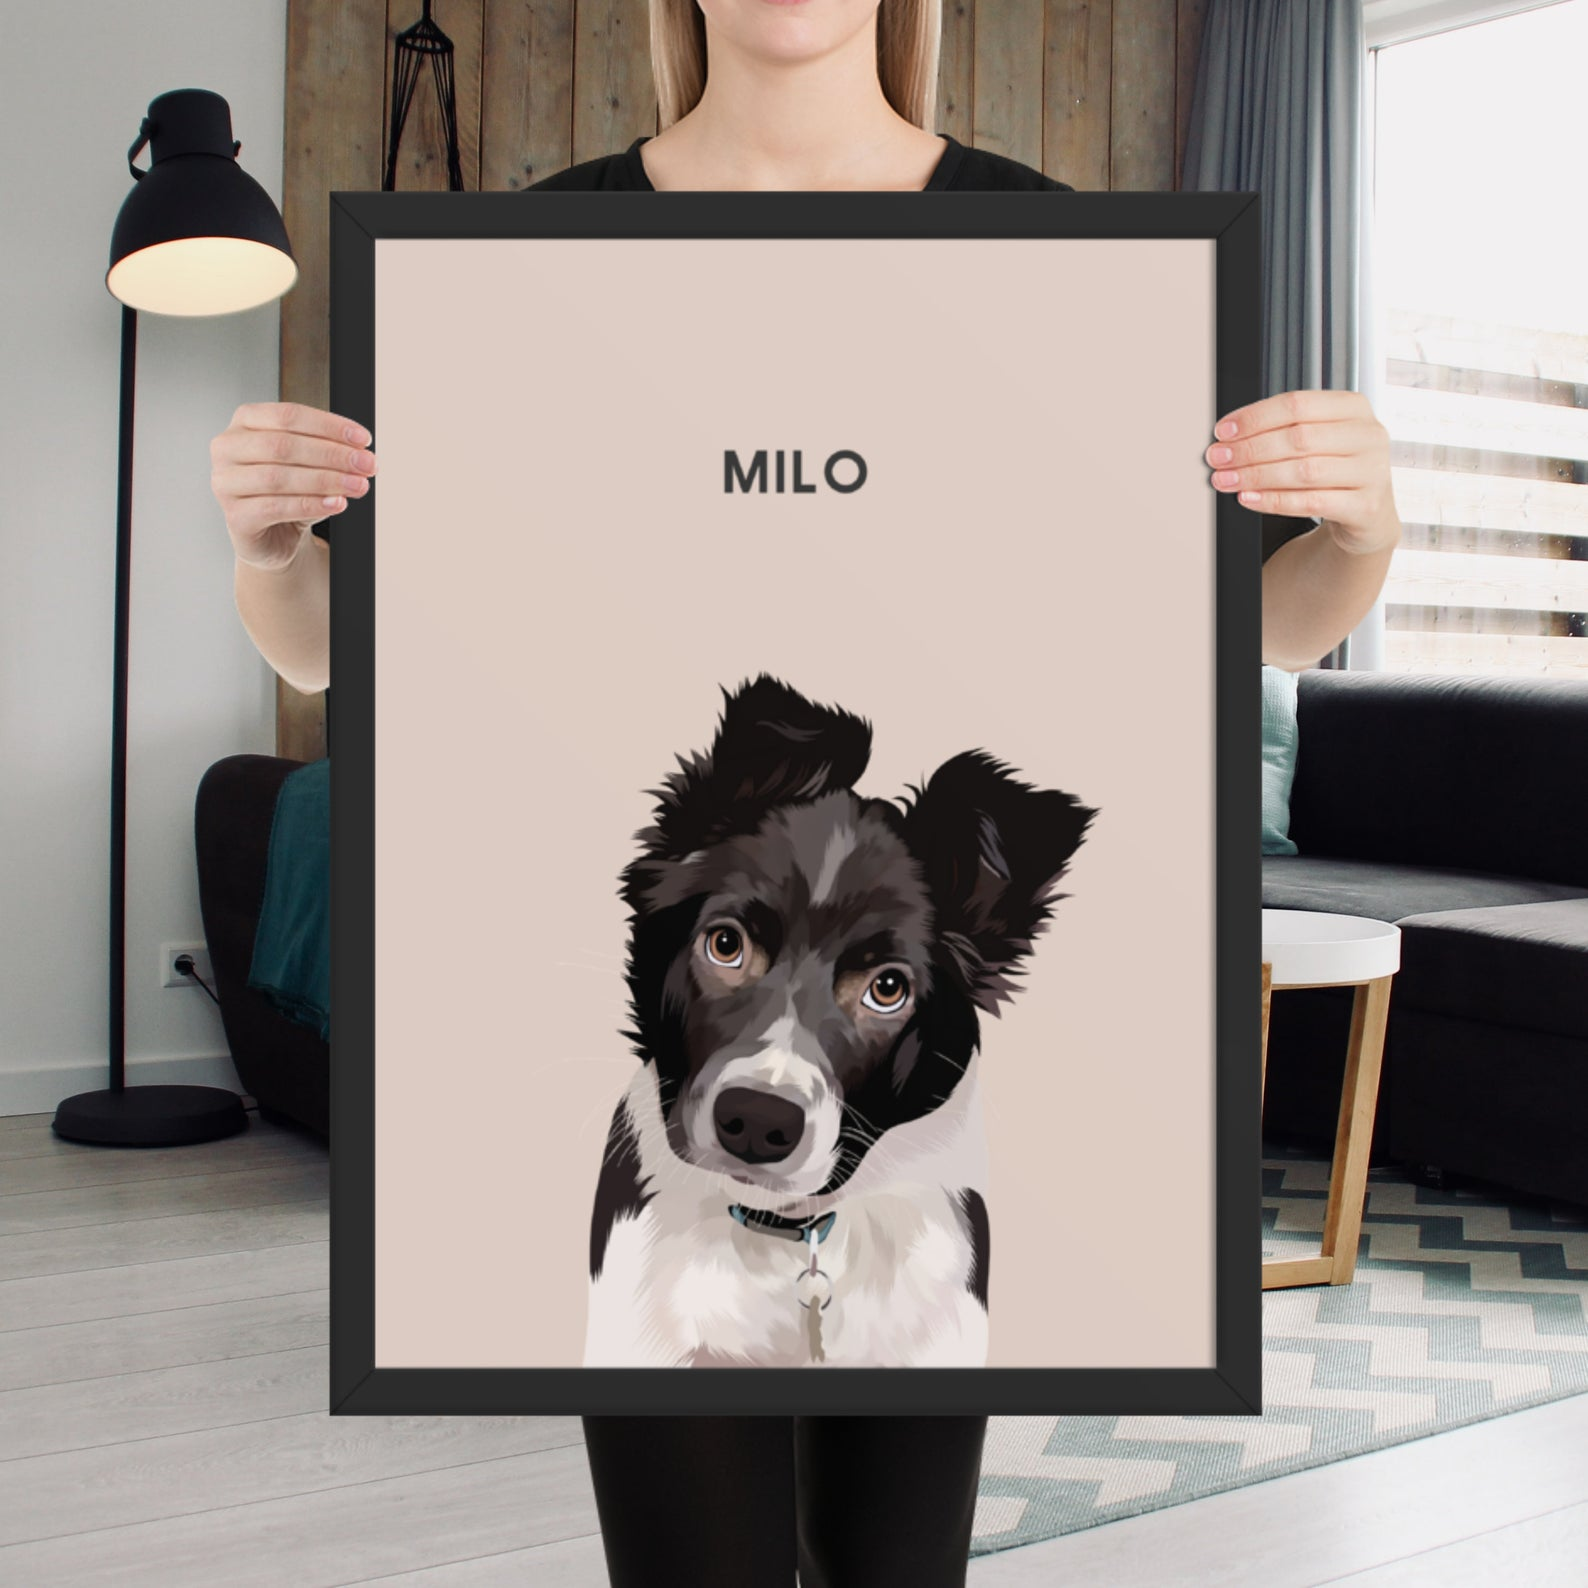 Person holding a dusty pink framed dog portrait with a Border Collie puppy named Milo